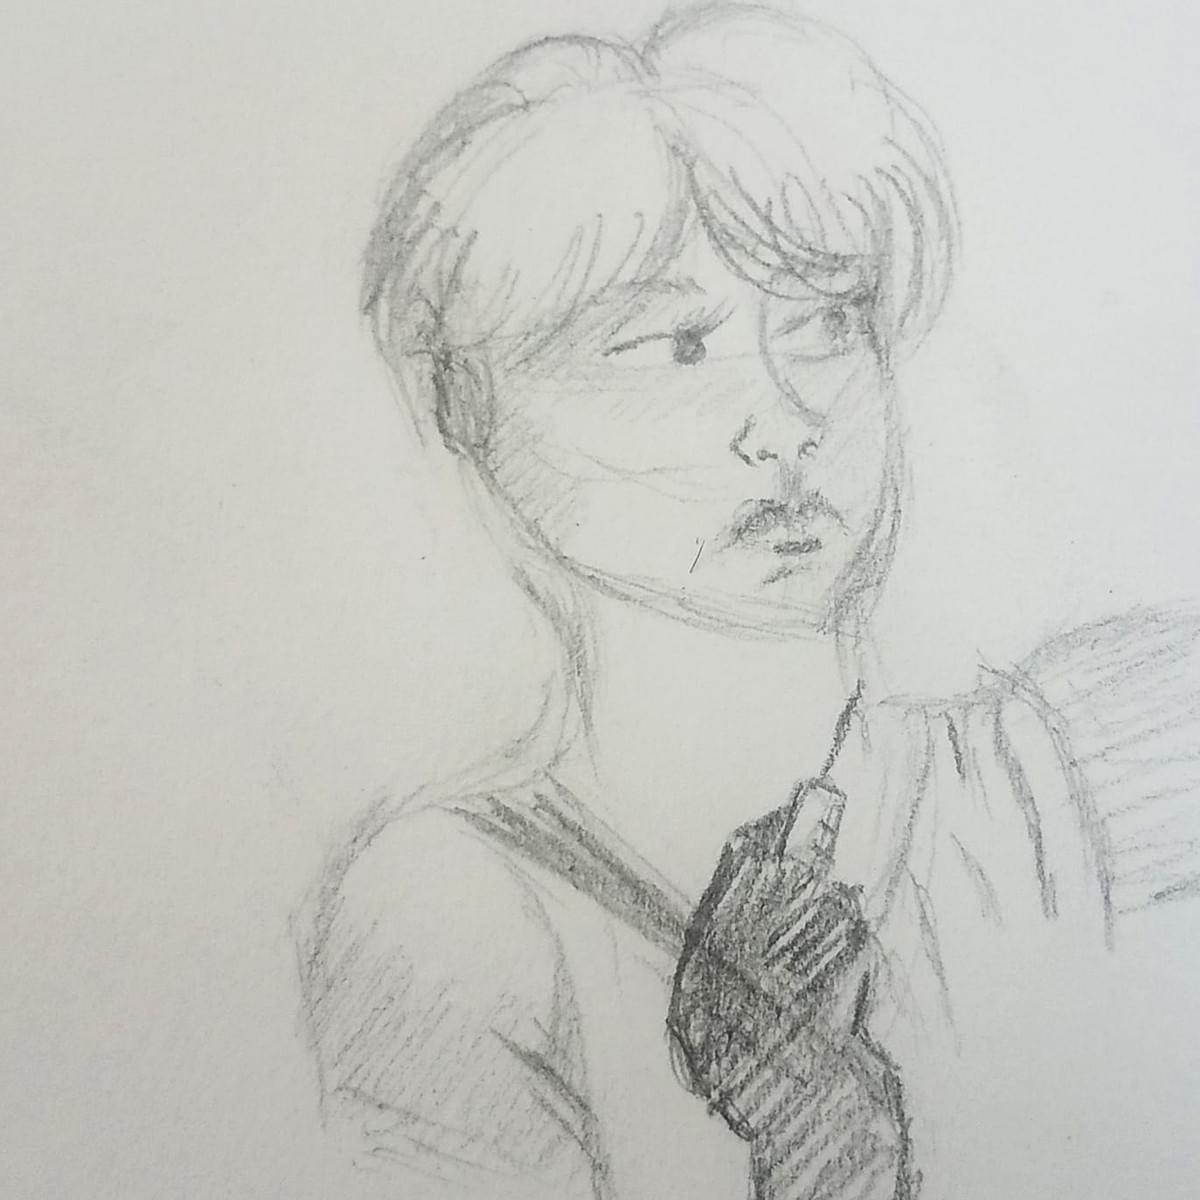 A sketch of Hedra, Single White Female.